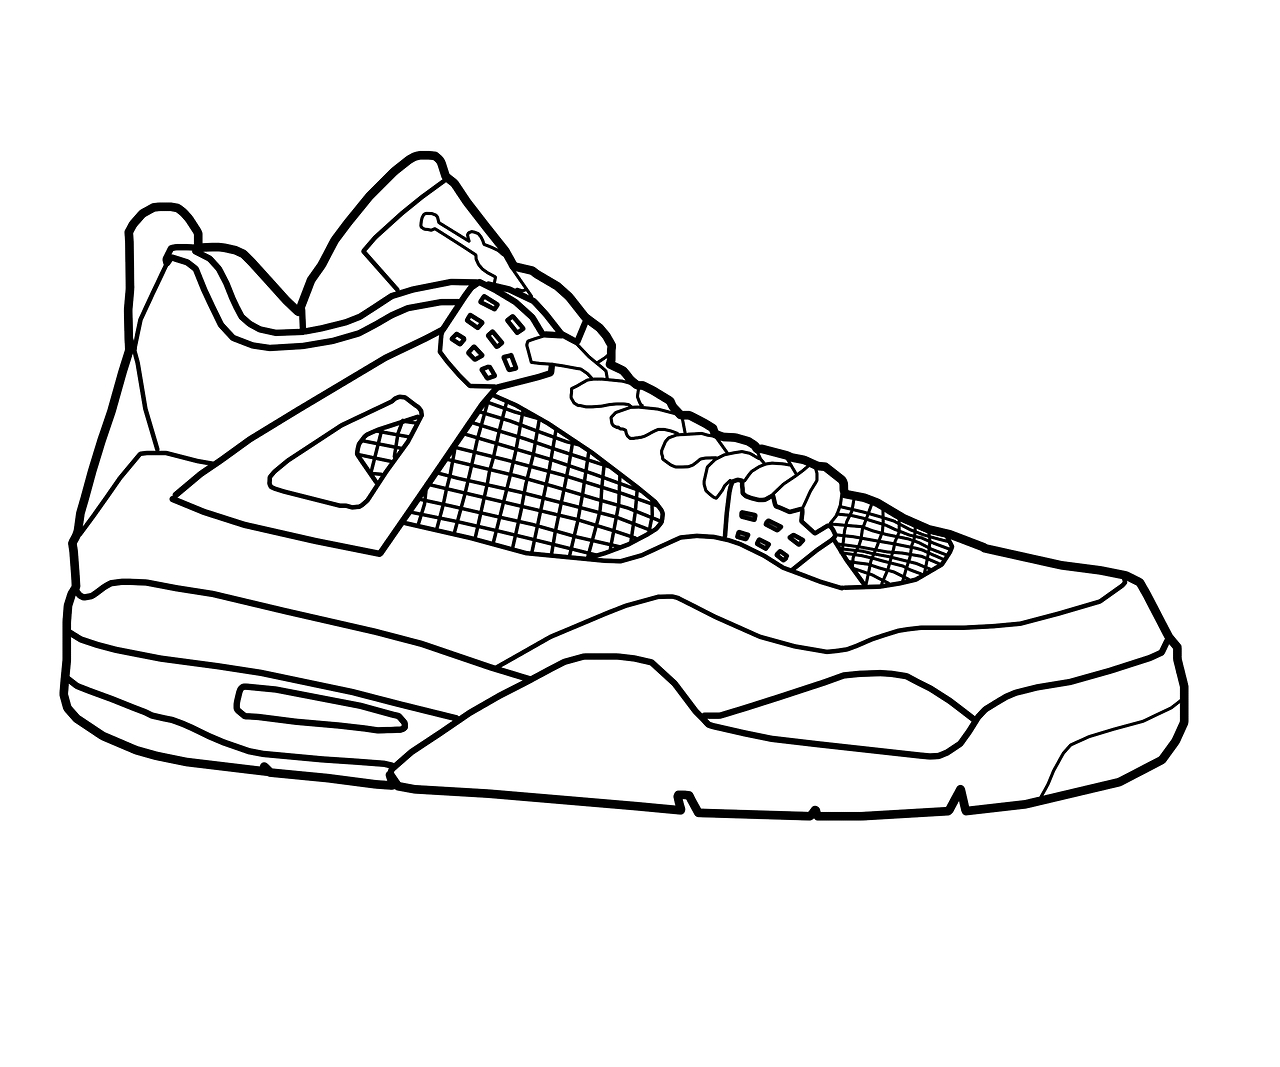 images of shoes to color shoe coloring pages to download and print for free to shoes color of images